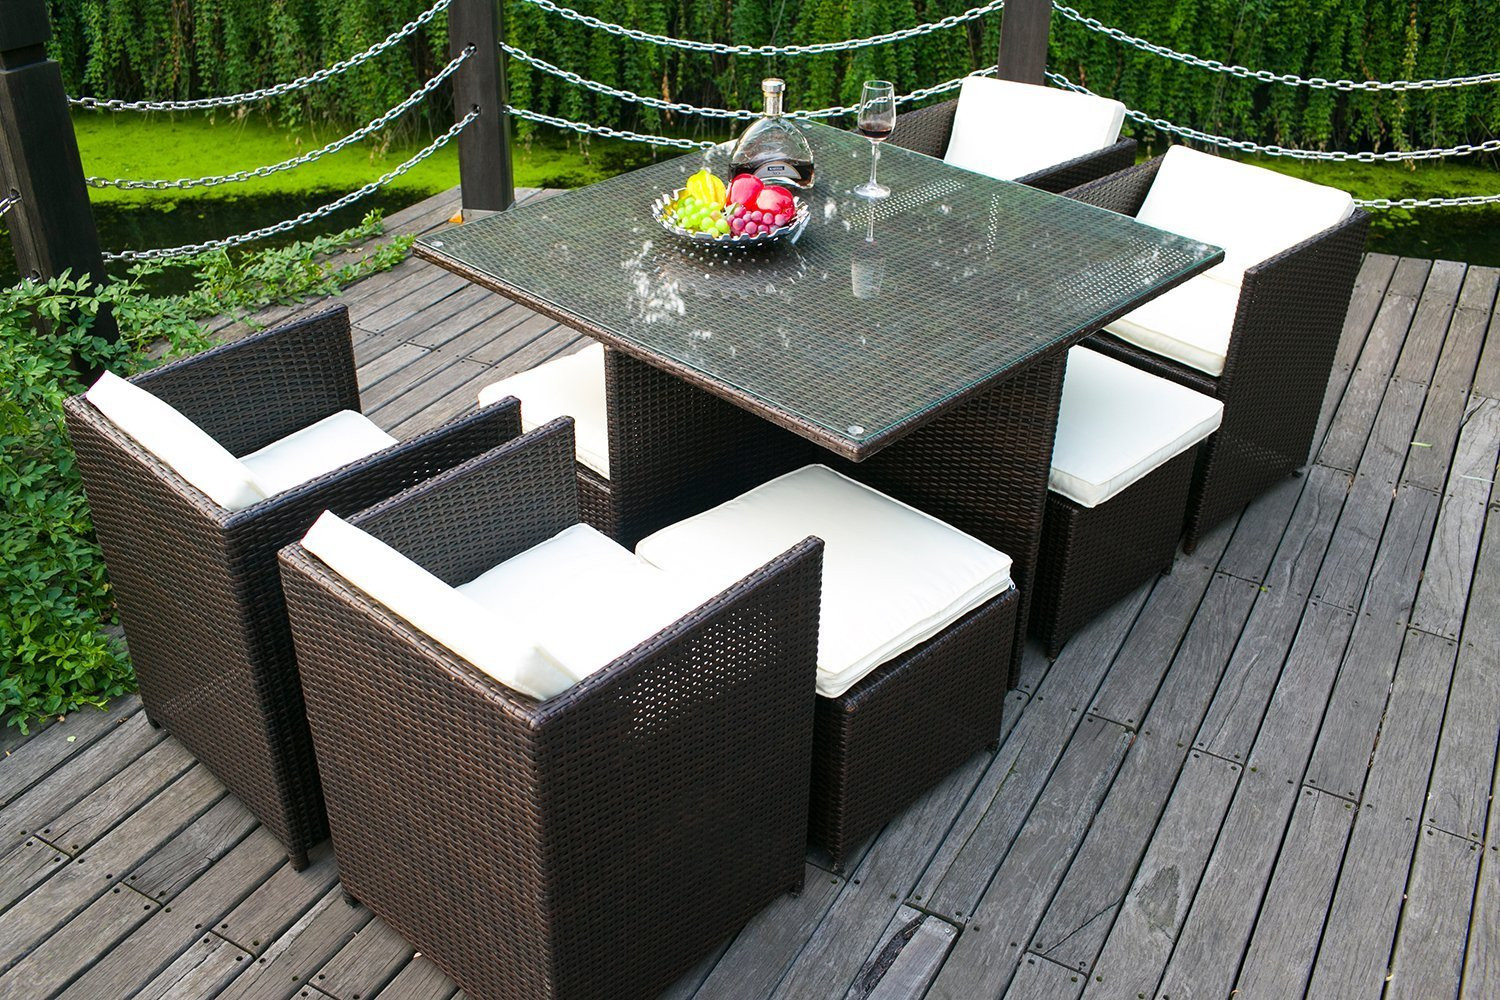 Best ideas about Indoor Patio Furniture . Save or Pin Outdoor Patio Furniture Sofa Indoor Wicker Cushions Rattan Now.